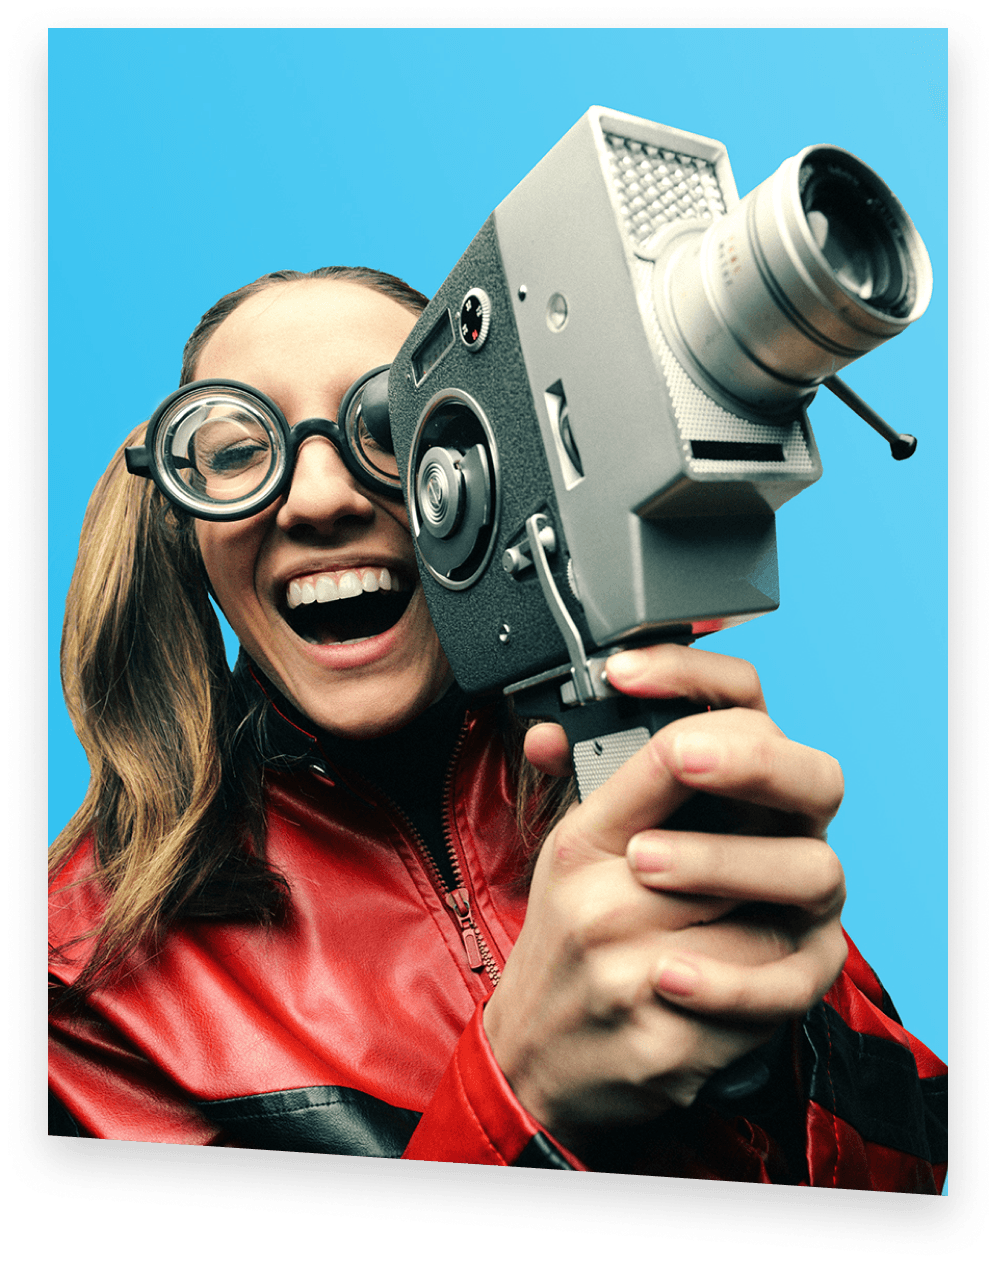 A smiling shmoop student wearing big glasses holding up a camcorder to her eye